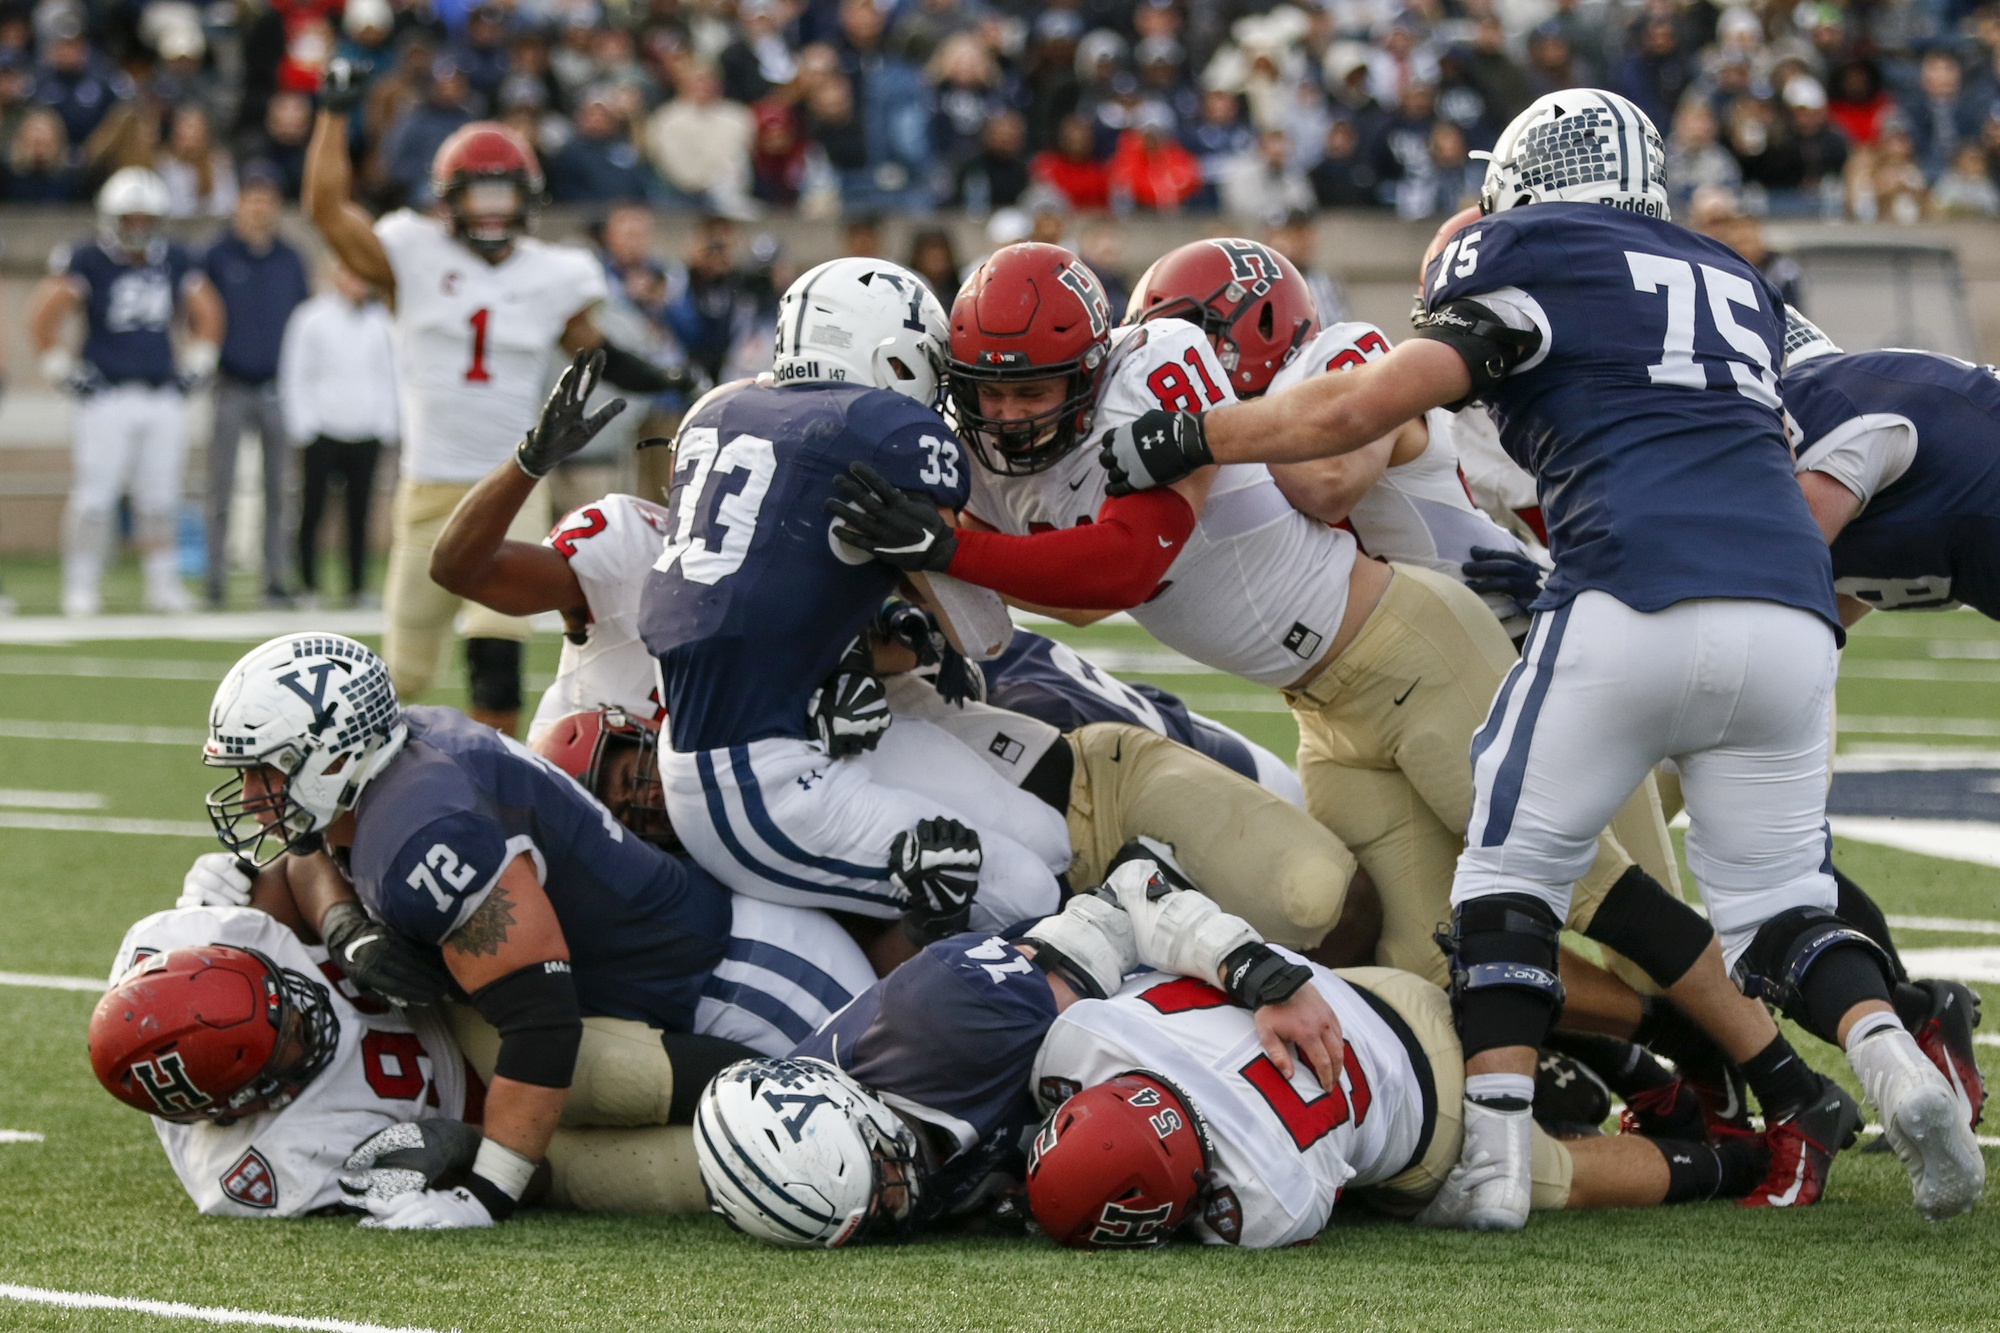 In a normal year, the historic Harvard-Yale football game would be about a month away. This year, Harvard sports are taking place off the field.